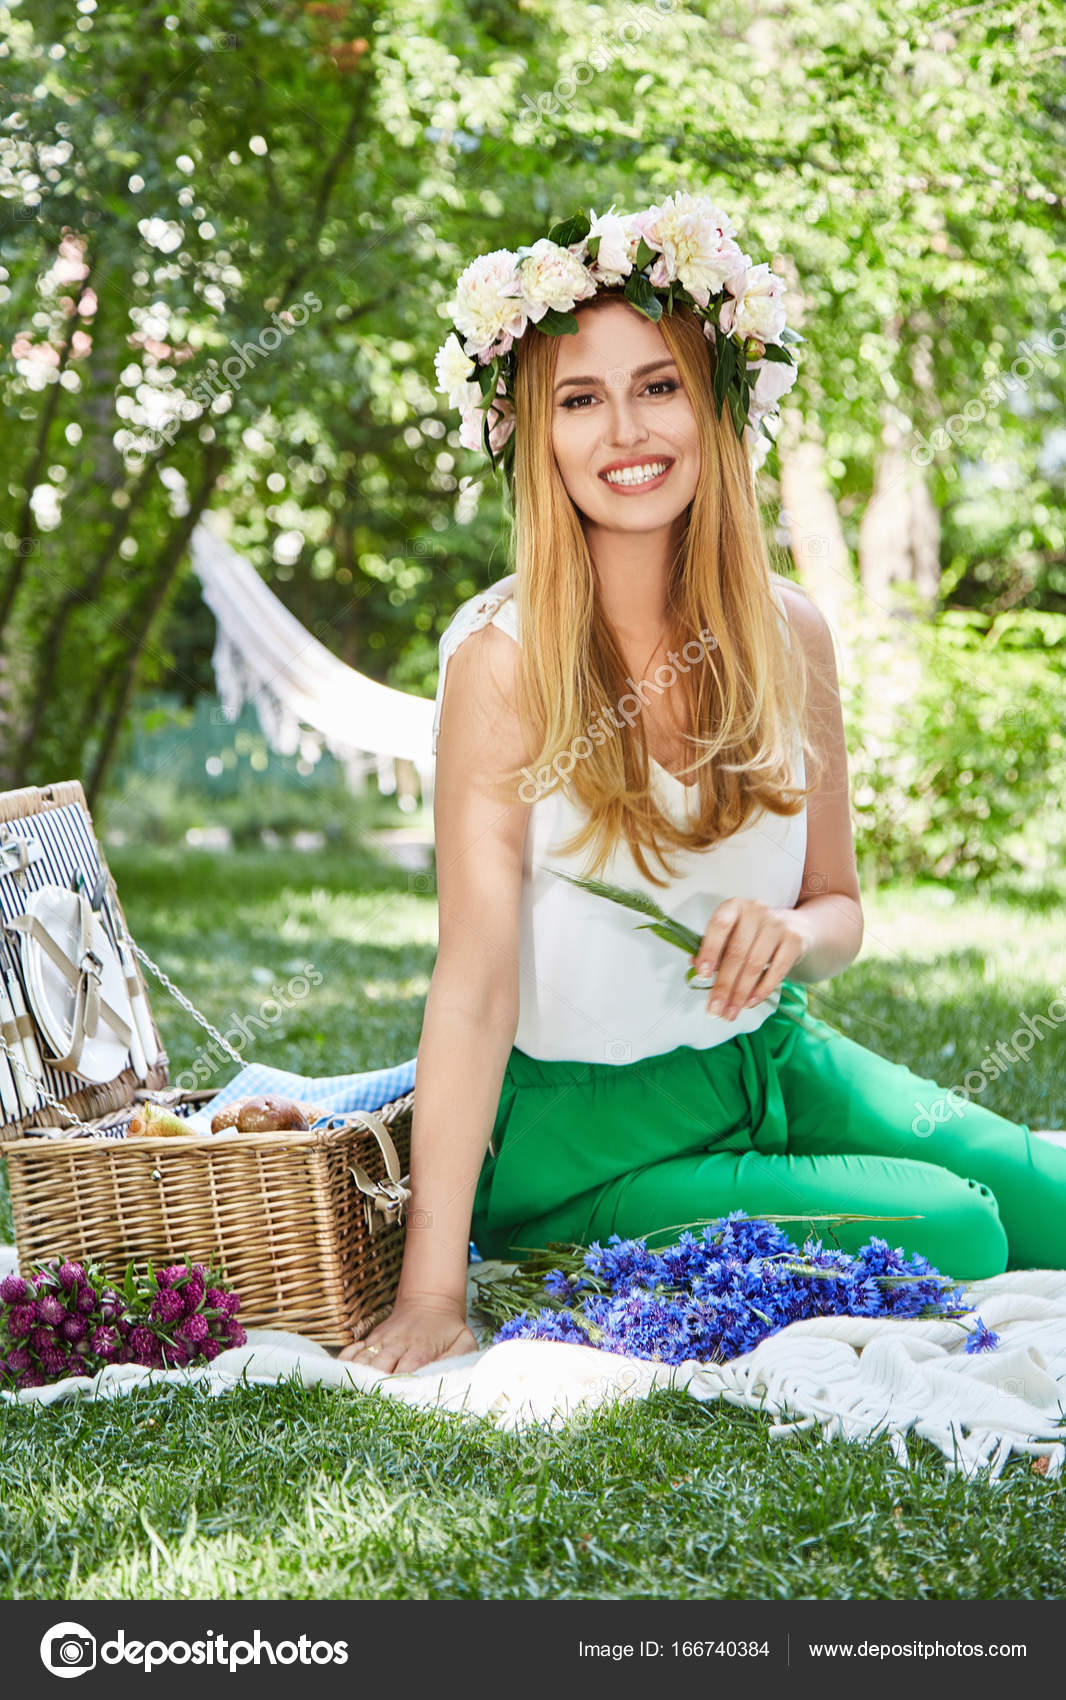 You are sexy photos of woman on picnic think